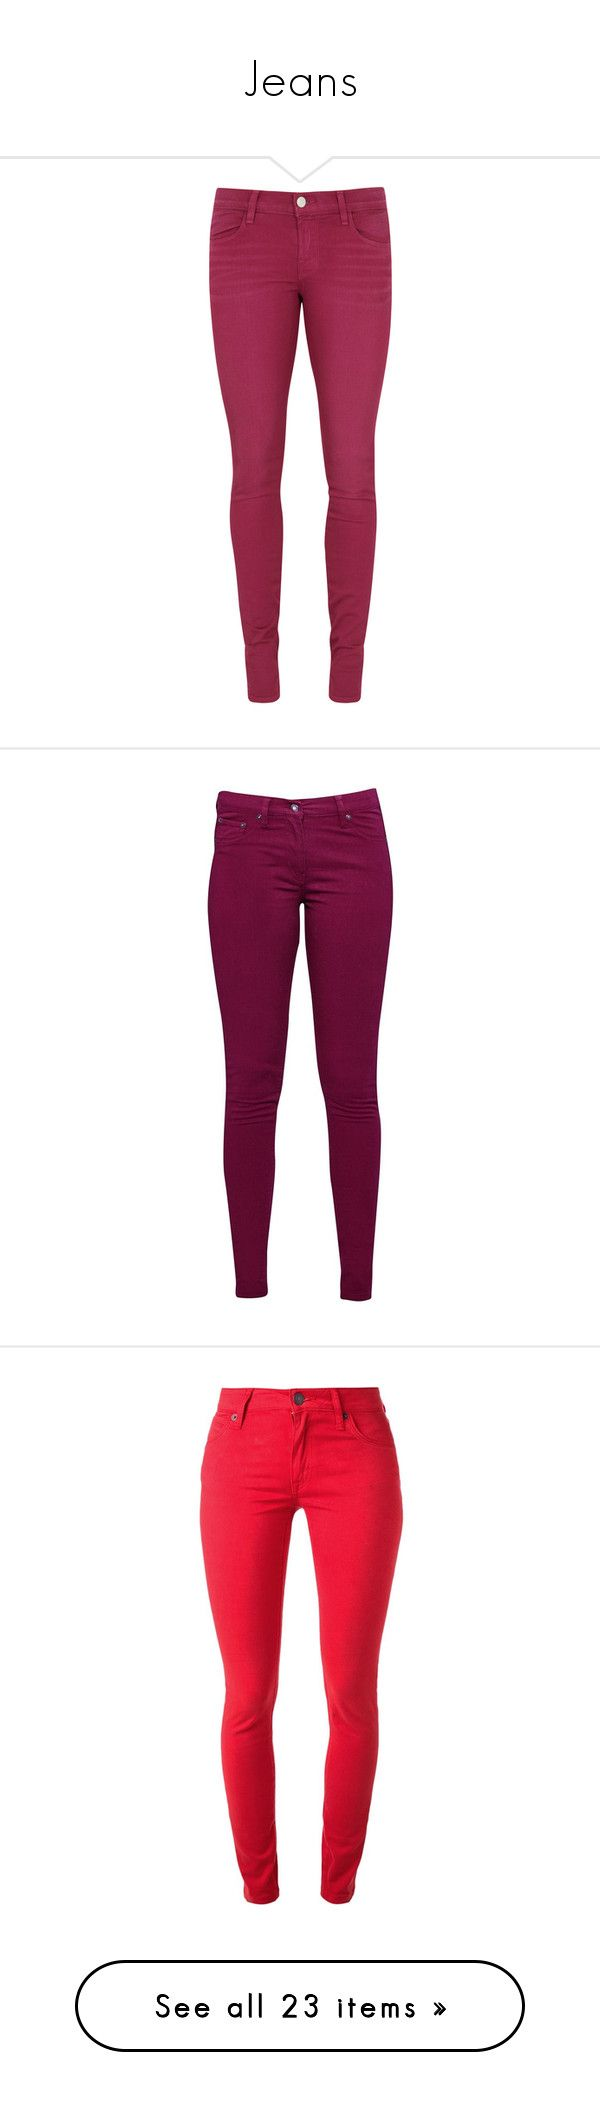 """Jeans"" by myabelard98 ❤ liked on Polyvore featuring jeans, pants, calças, pink, skinny fit jeans, j brand skinny jeans, skinny fit denim jeans, super skinny jeans, purple skinny jeans and bottoms"